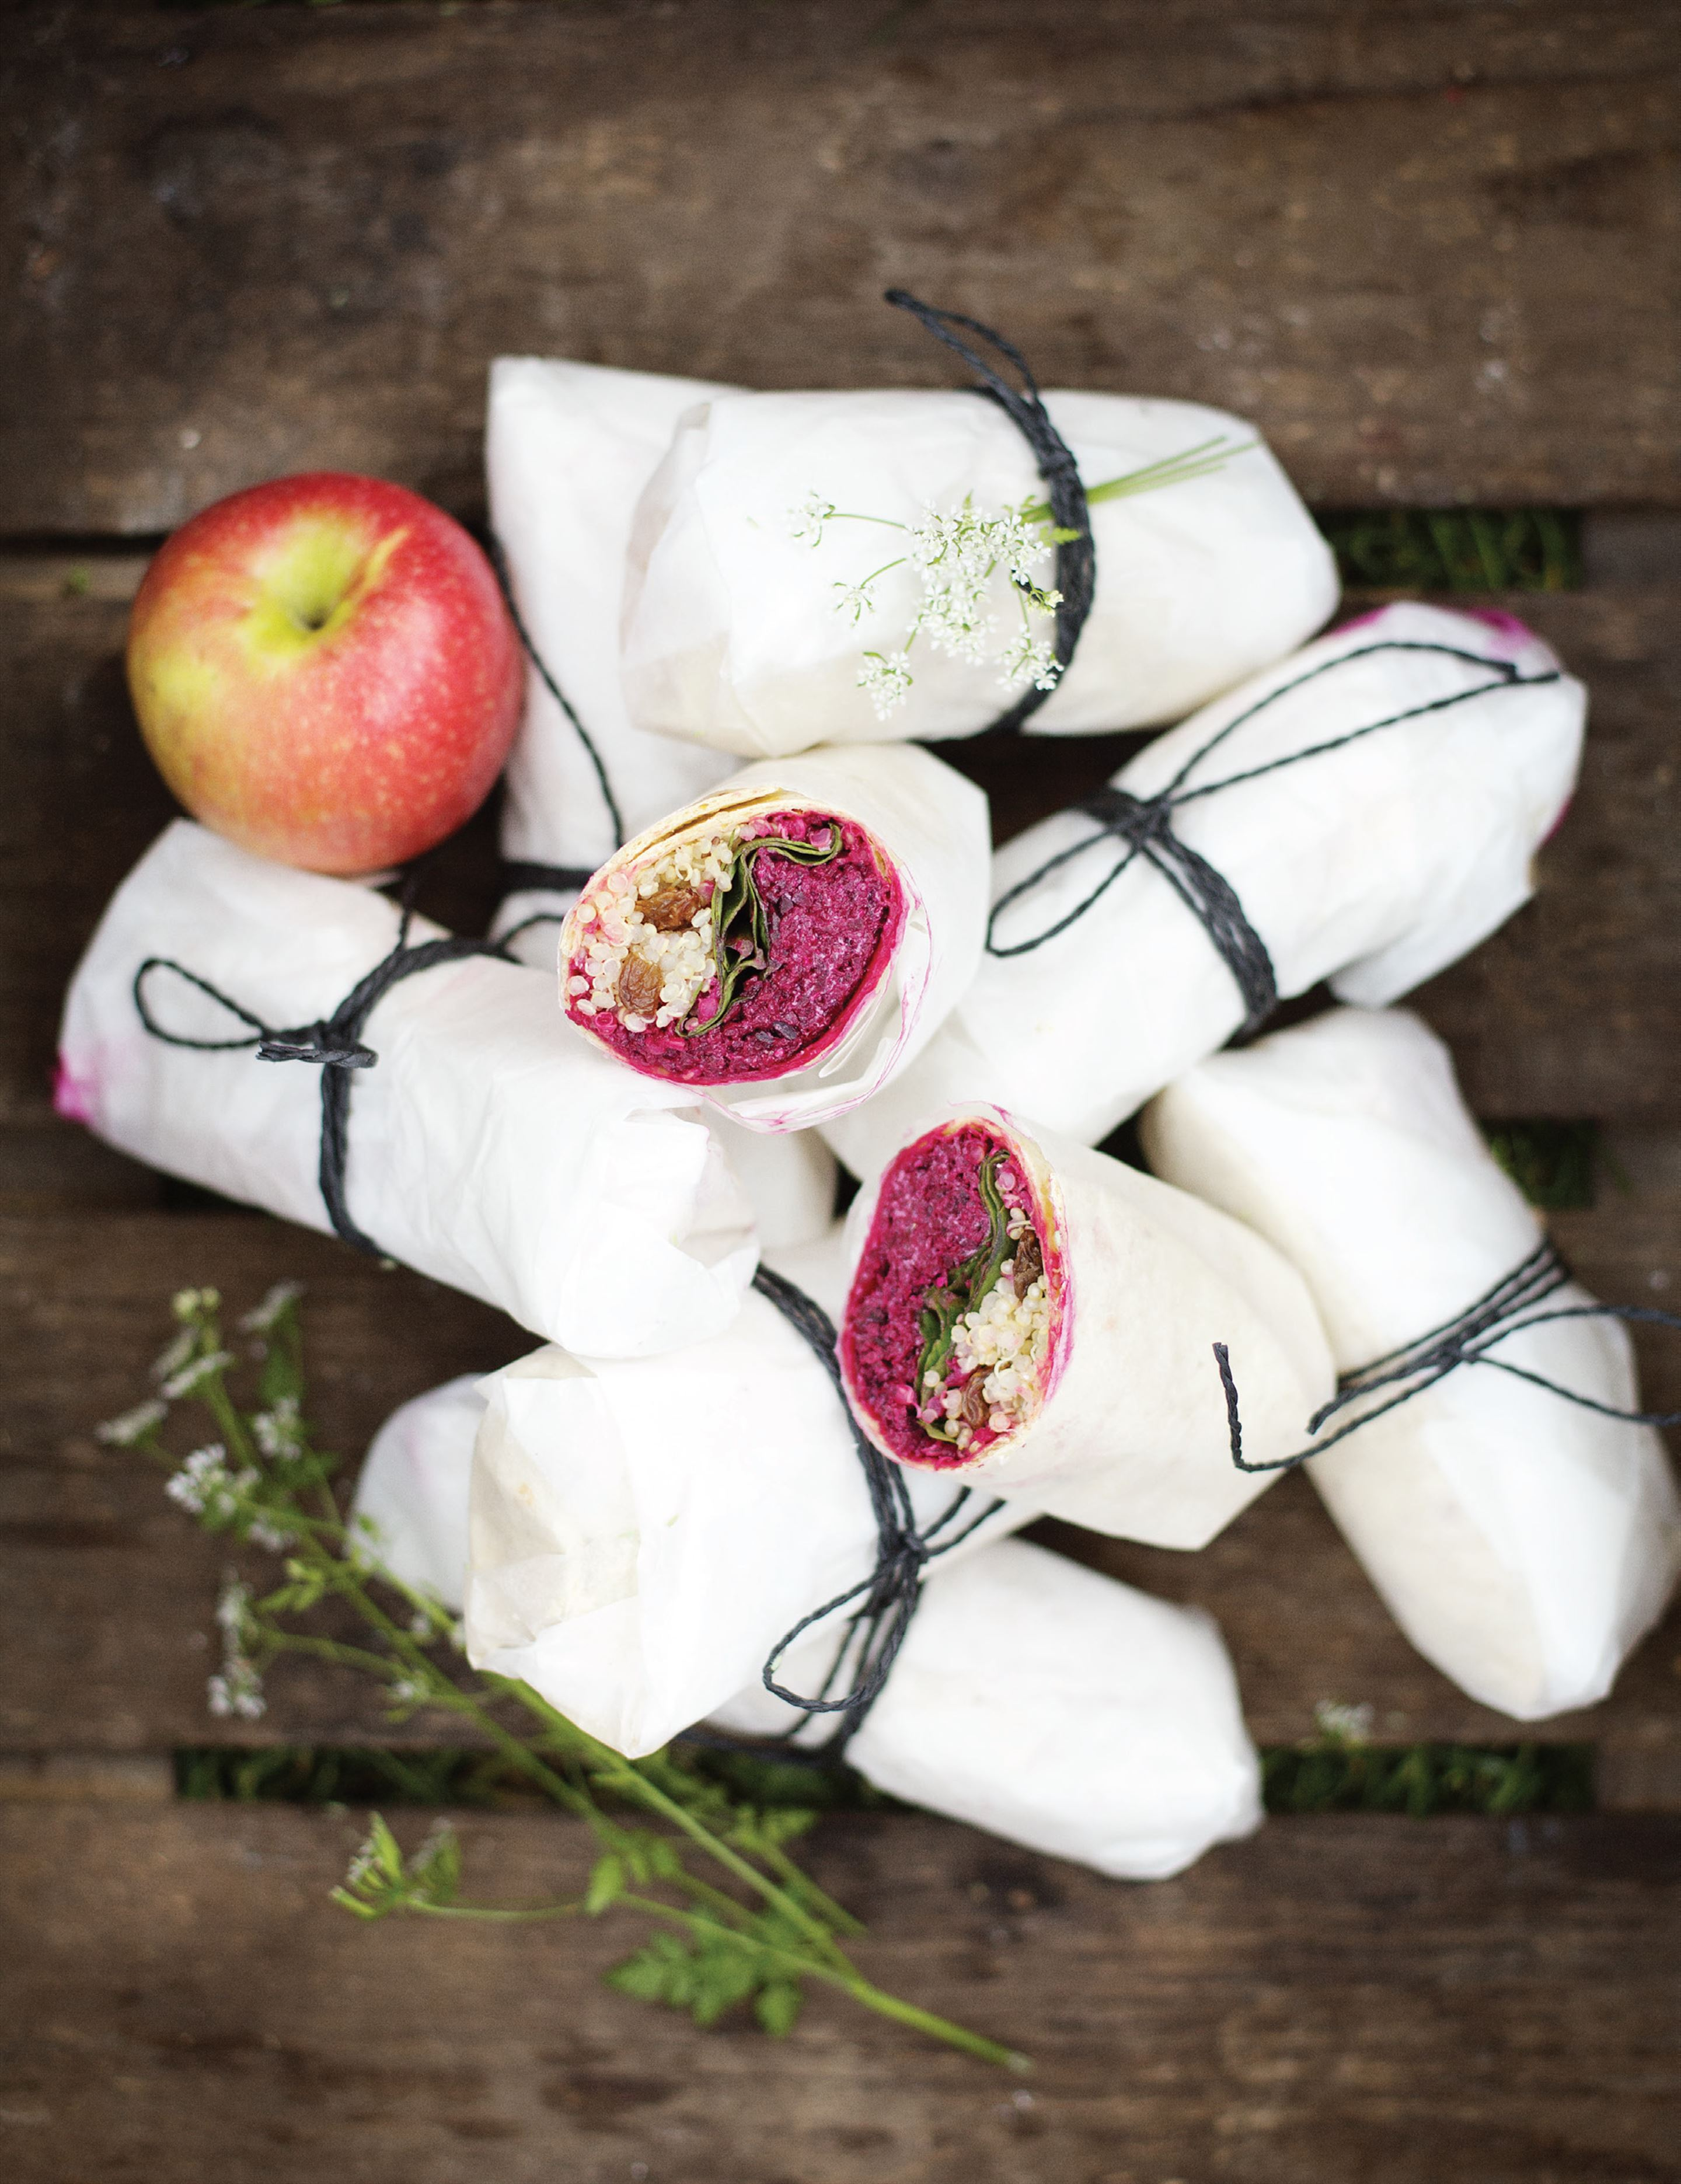 Beetroot, apple and goat's cheese wraps